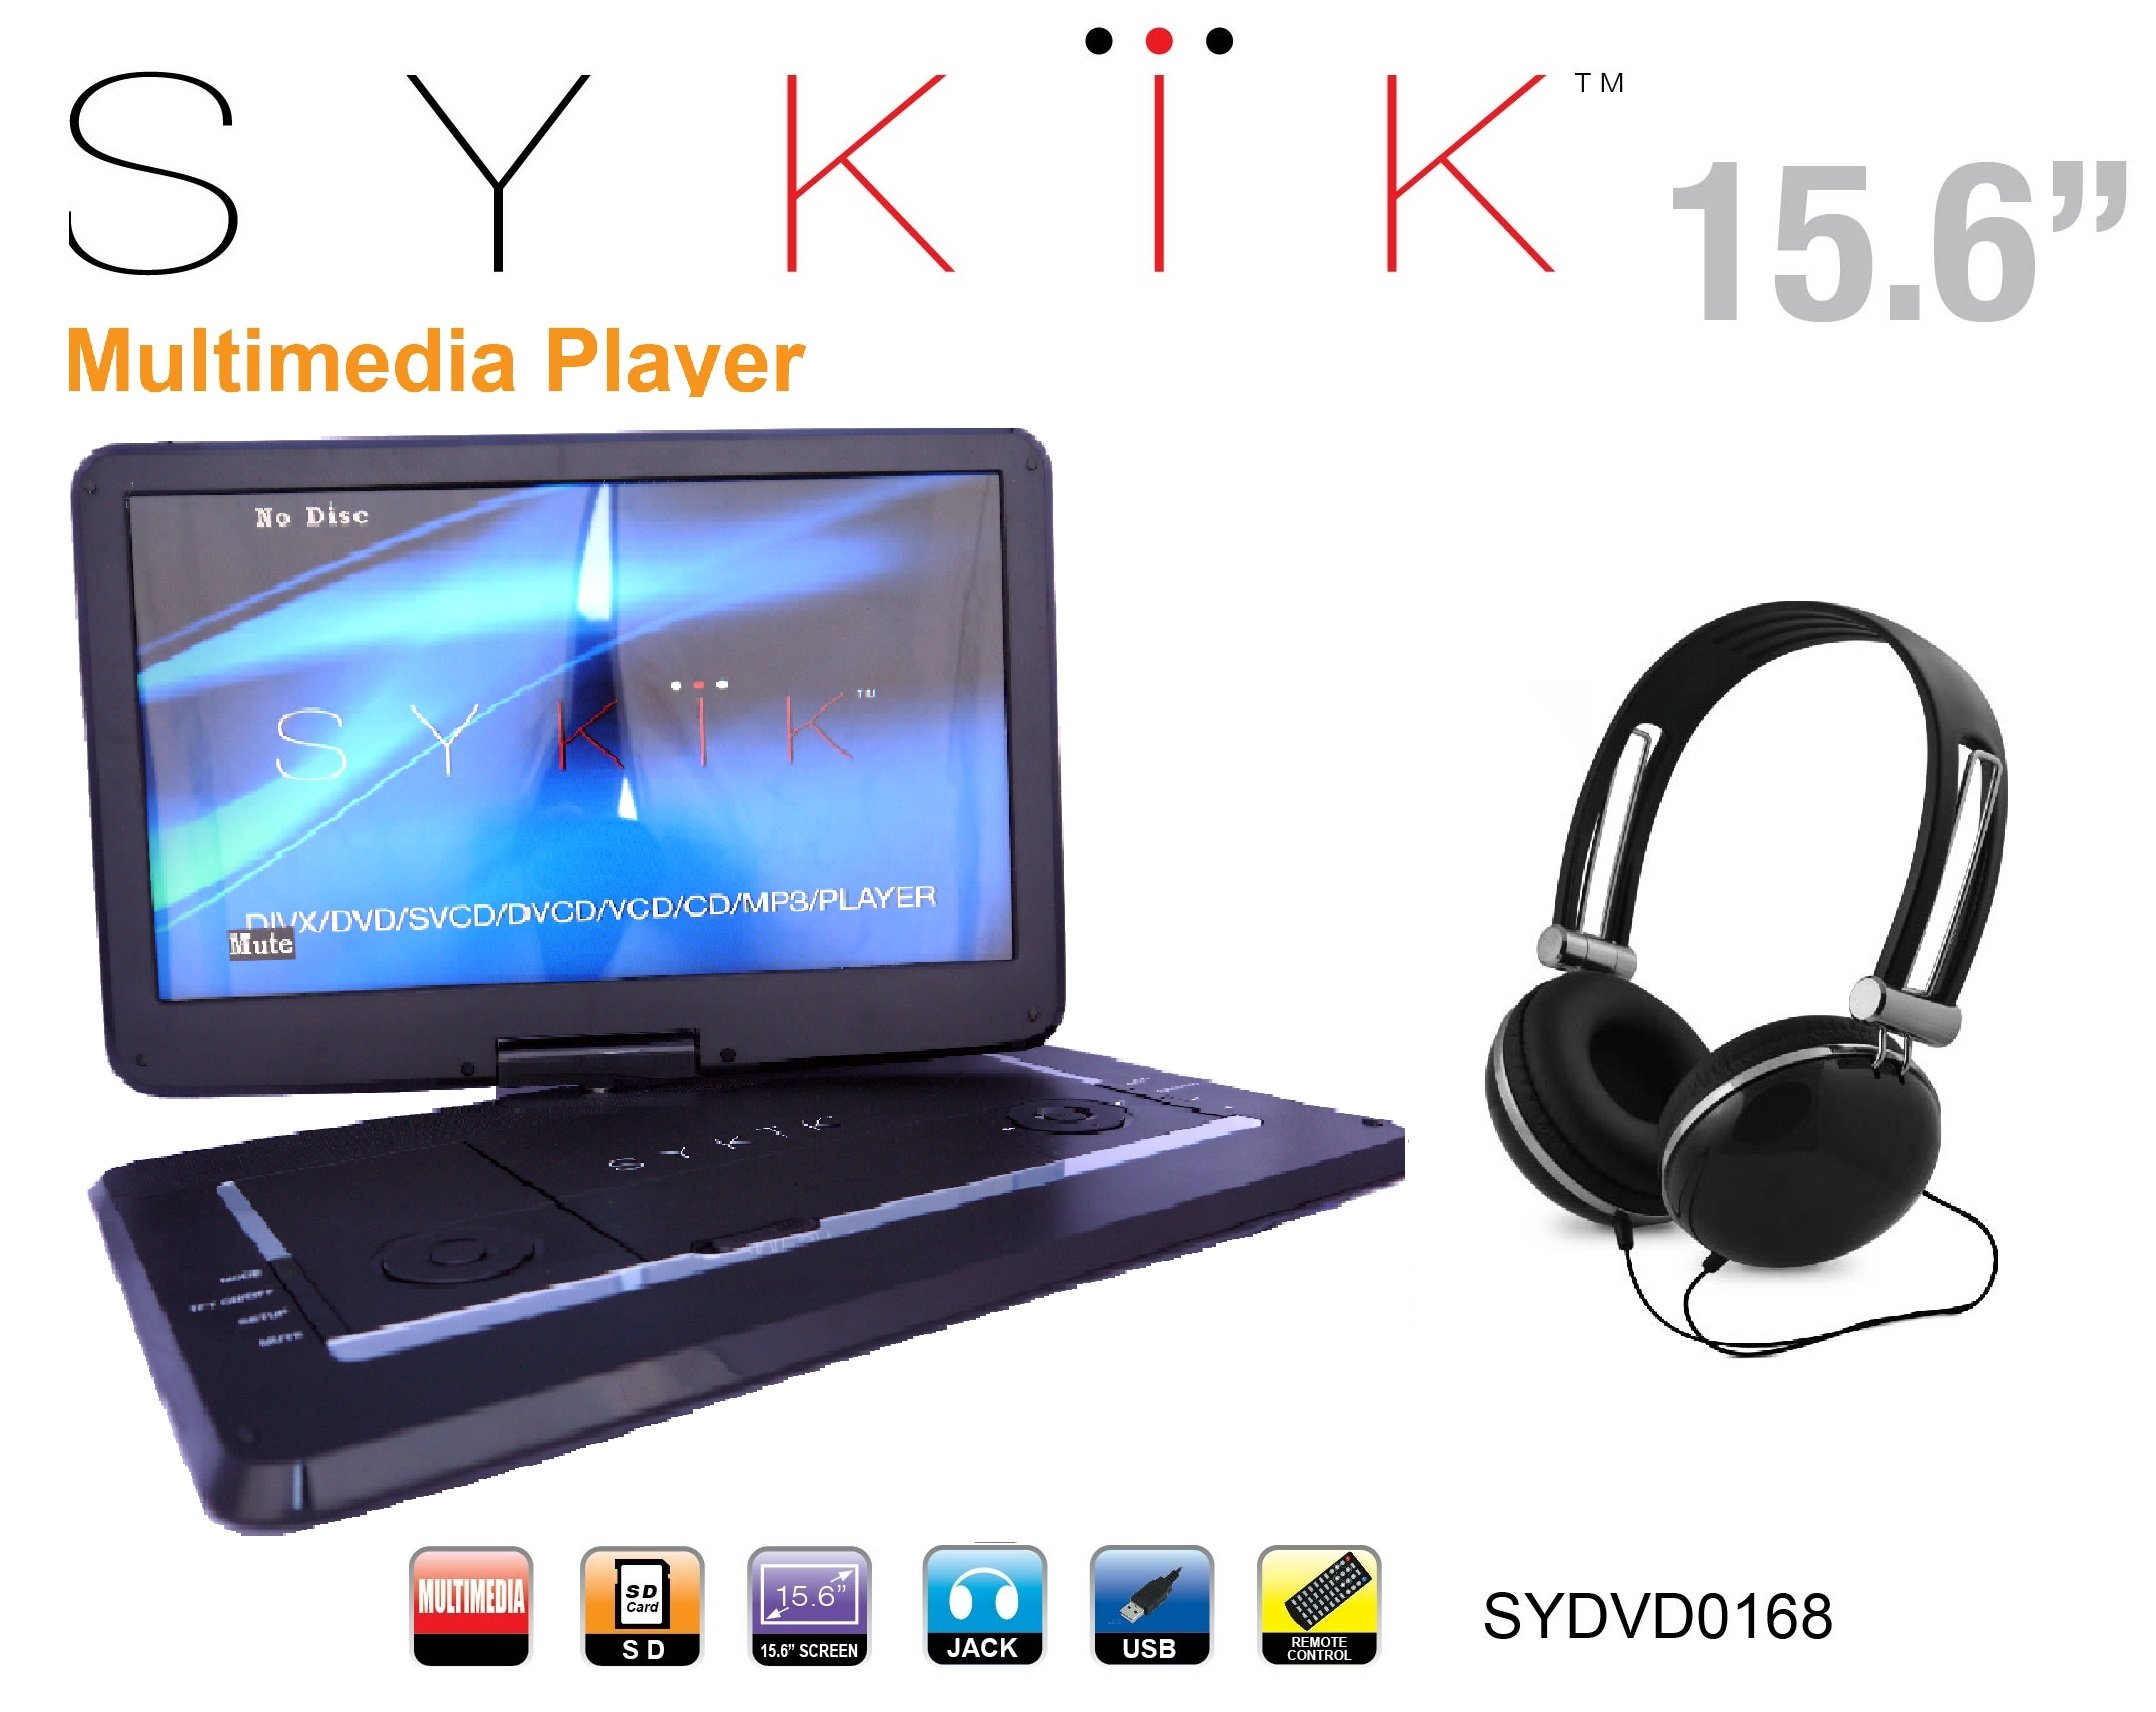 Sykik SYDVD0168 15.6'' All multi region, zone free, HD swivel portable DVD player,USB,SD ports with headphones, Ac adaptor,car adaptor Remote control (one year warranty) Black